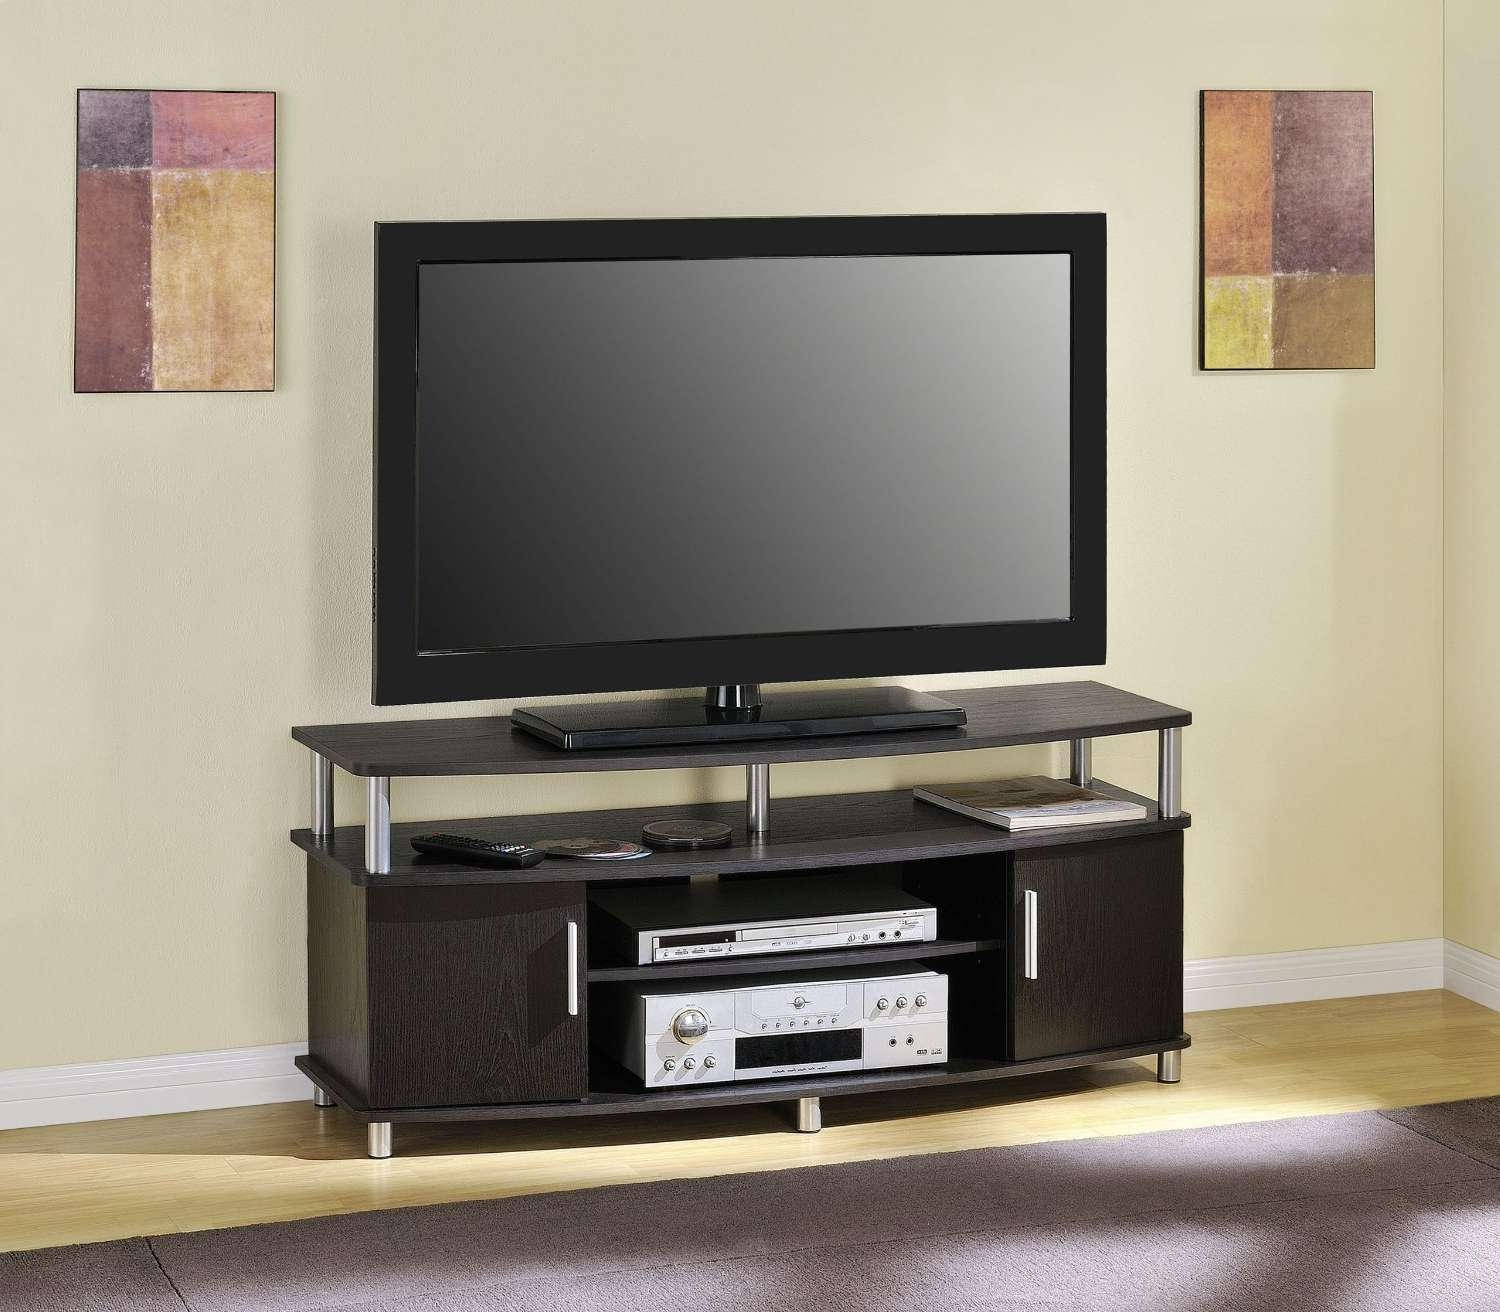 Good Tv Stands 55 Inch Flat Screen 61 On Interior Decor Home With With 61 Inch Tv Stands (View 2 of 15)